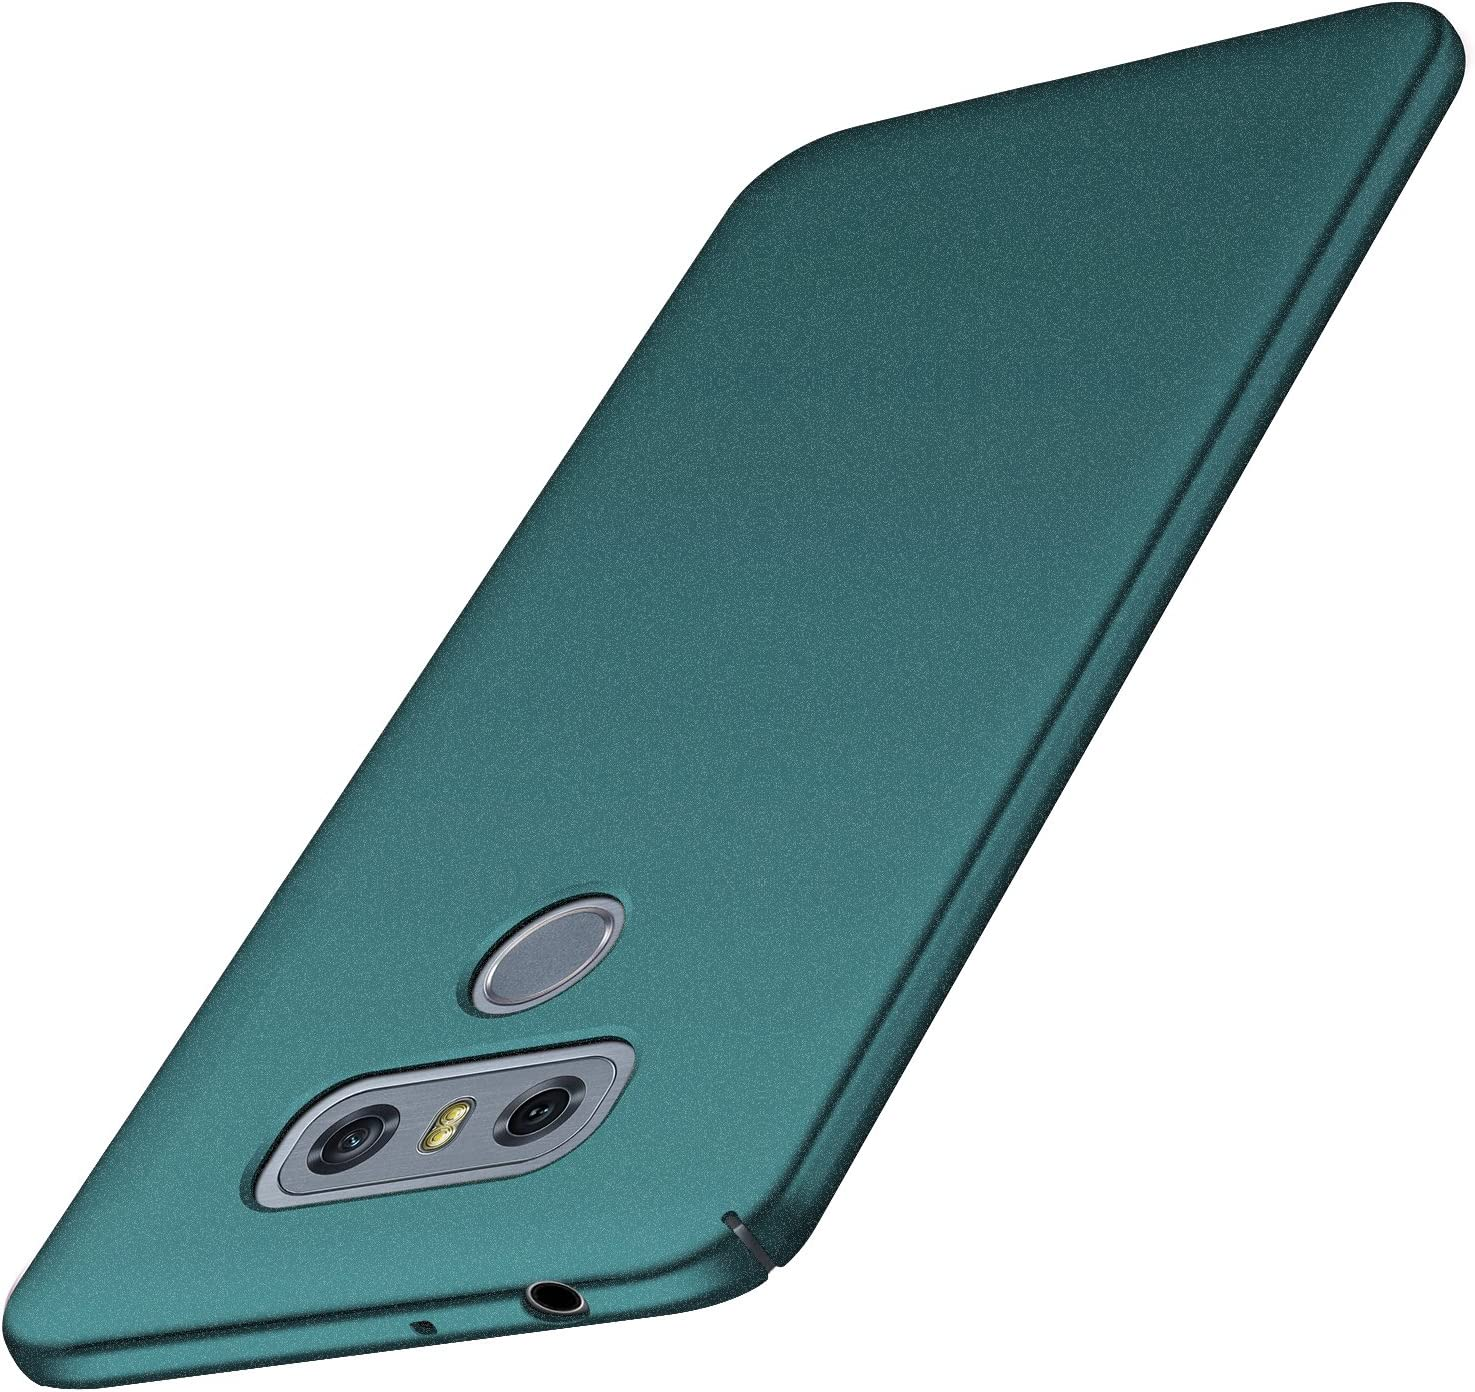 Tianyd LG G6 Case, [Ultra-Thin] Materials Ultra-Thin Protective Cover for LG G6 (Gravel Green)